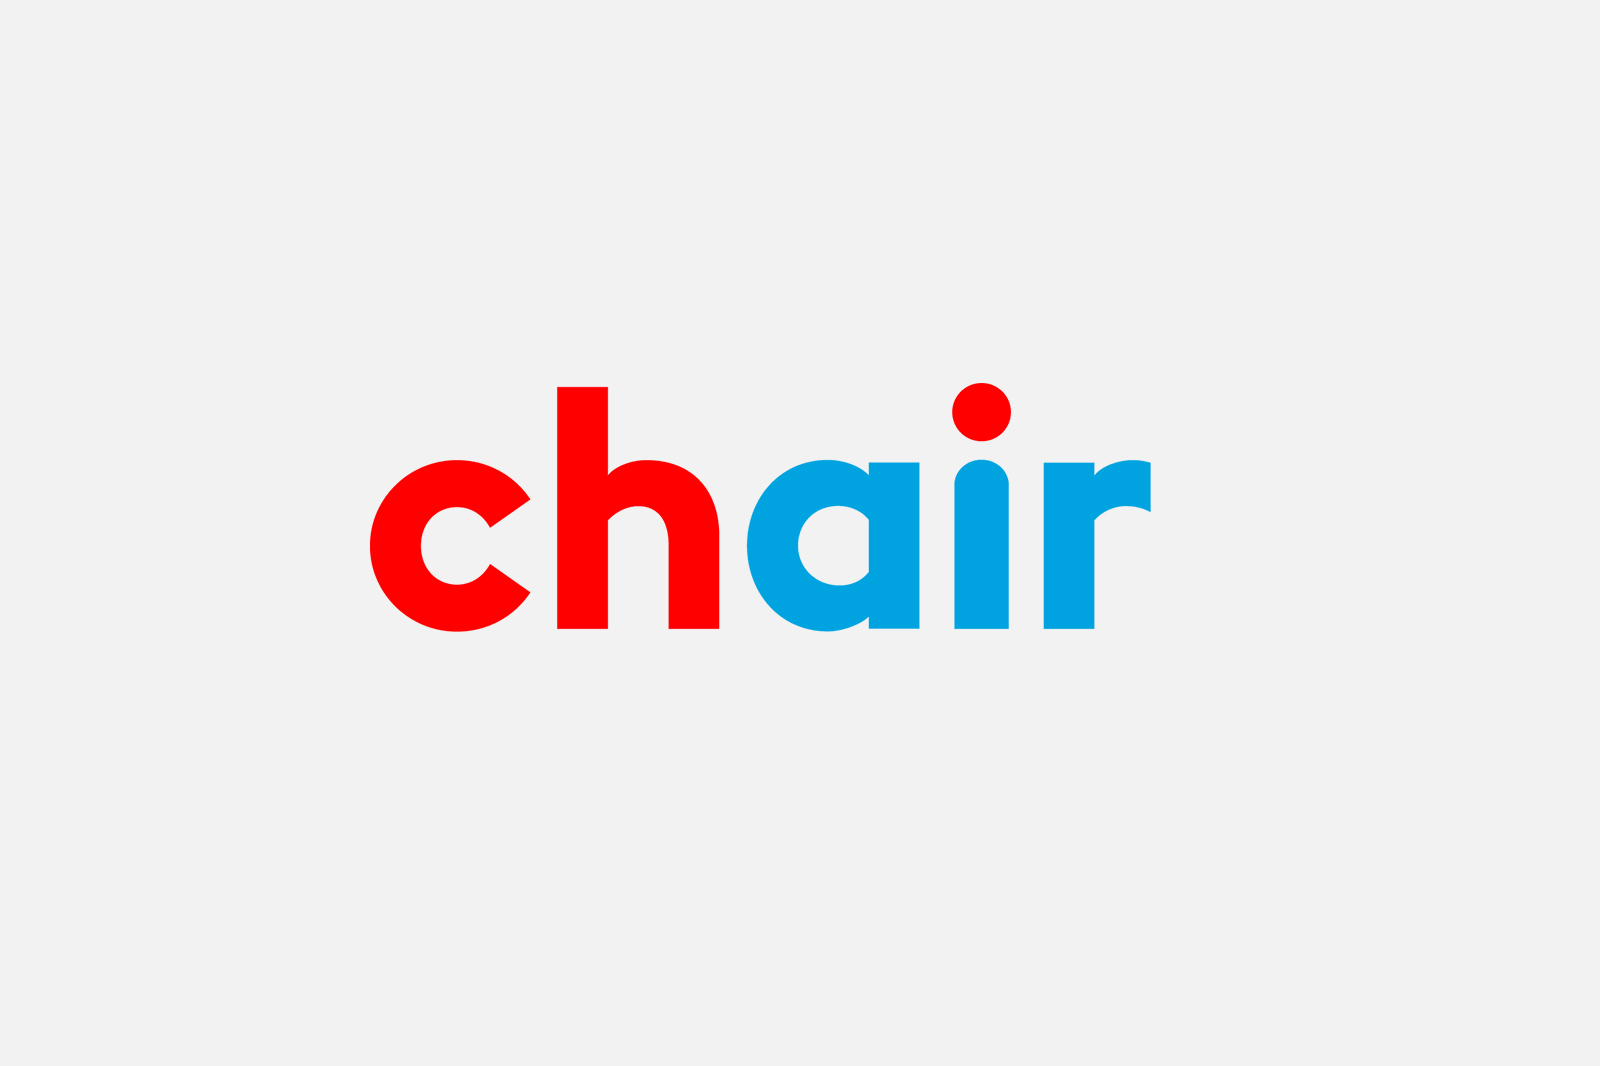 Chair Airlines - Fonts In Use